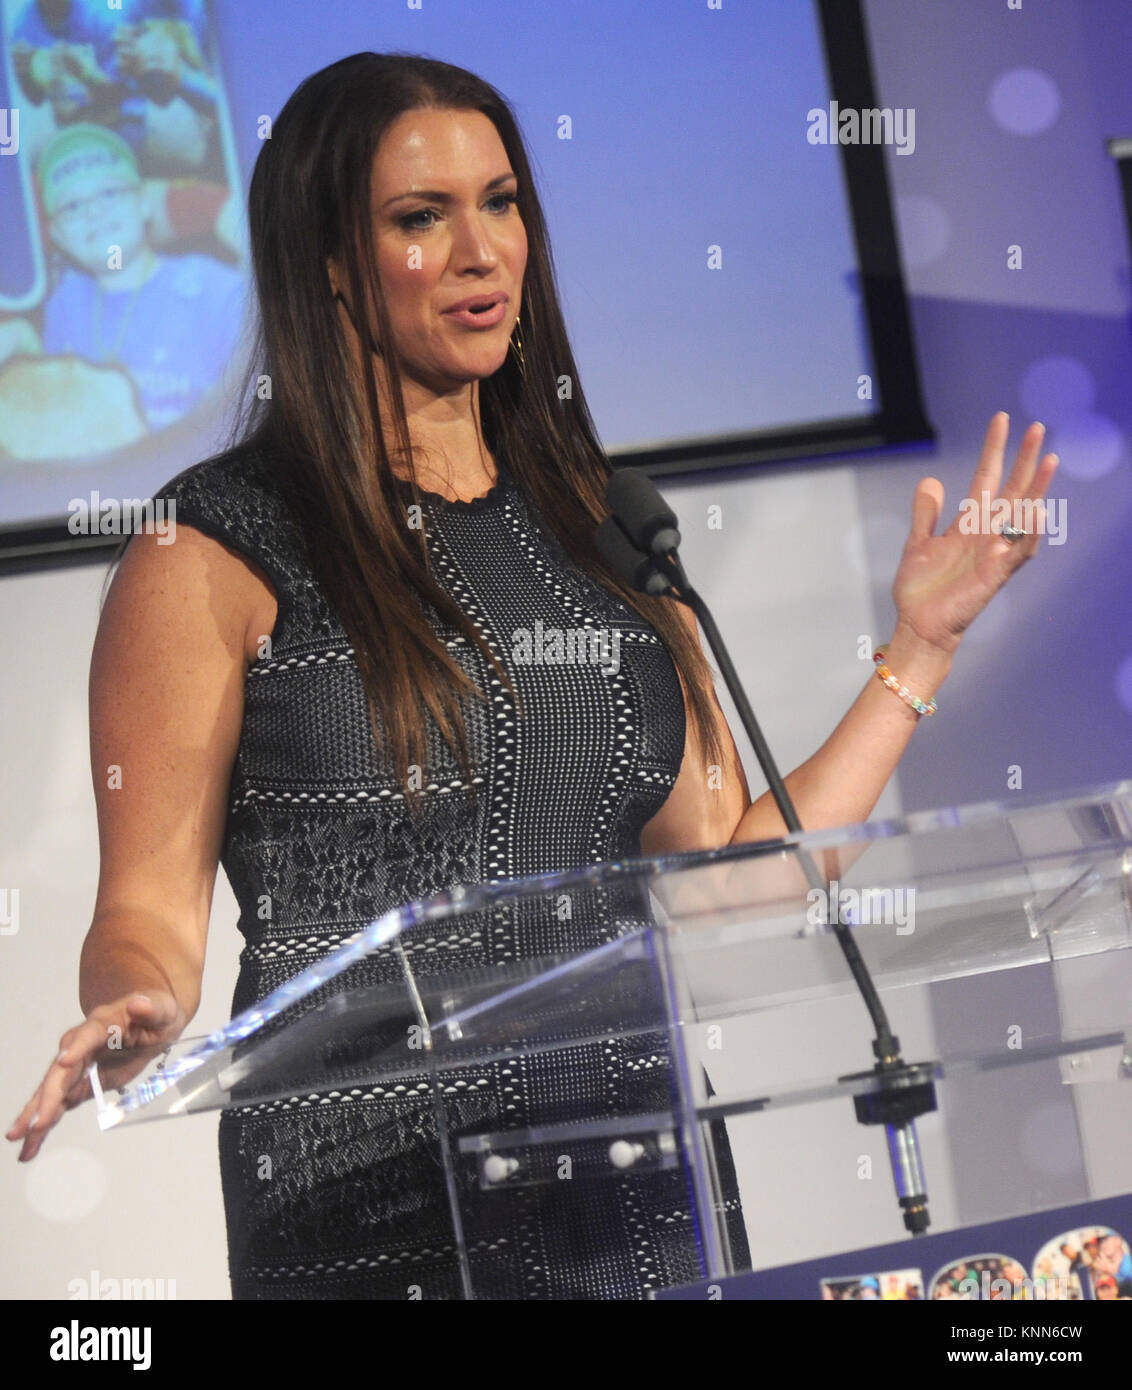 NEW YORK, NY - AUGUST 21: Stephanie McMahon attends John Cena and Make-A-Wish celebration of his 500th Wish Granting - Stock Image